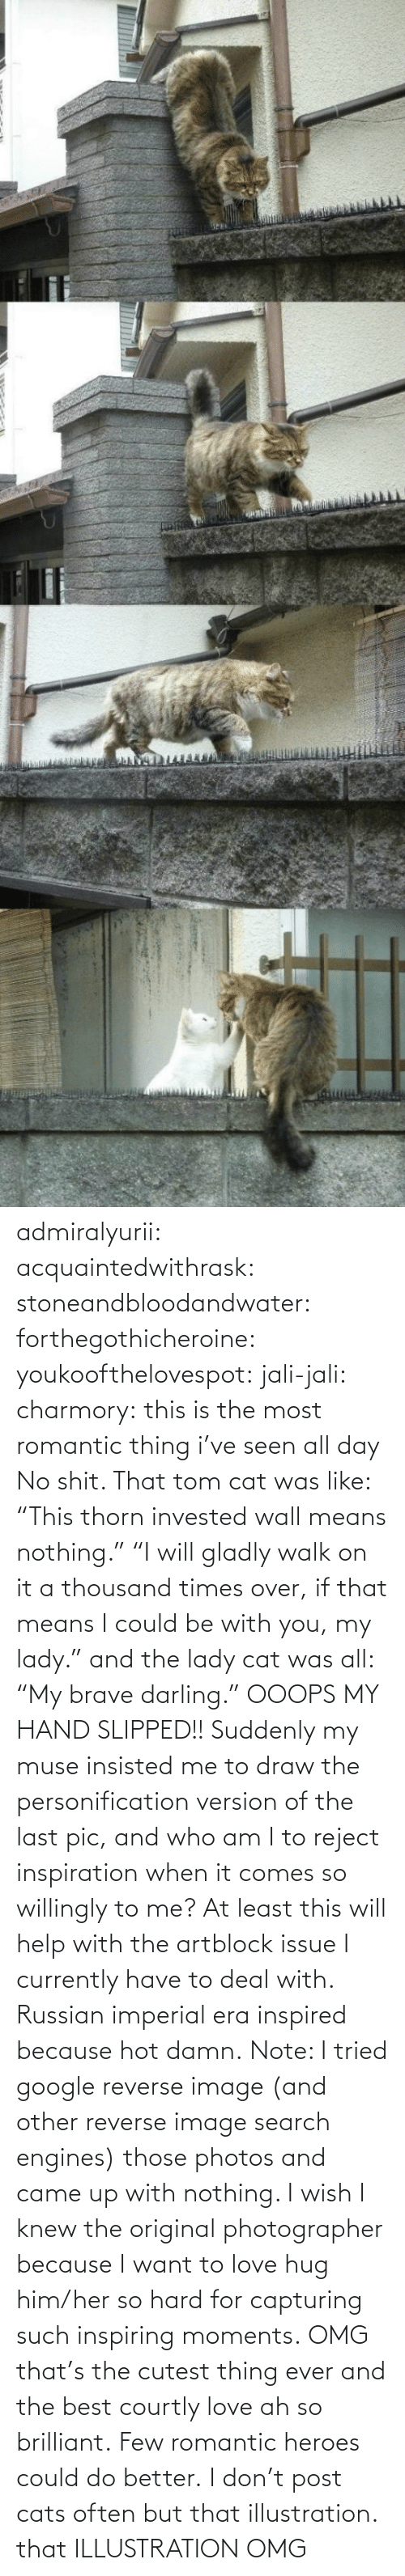 "him: admiralyurii: acquaintedwithrask:  stoneandbloodandwater:  forthegothicheroine:  youkoofthelovespot:  jali-jali:  charmory:  this is the most romantic thing i've seen all day  No shit. That tom cat was like: ""This thorn invested wall means nothing."" ""I will gladly walk on it a thousand times over, if that means I could be with you, my lady."" and the lady cat was all: ""My brave darling."" OOOPS MY HAND SLIPPED!!  Suddenly my muse insisted me to draw the personification version of the last pic, and who am I to reject inspiration when it comes so willingly to me? At least this will help with the artblock issue I currently have to deal with. Russian imperial era inspired because hot damn. Note: I tried google reverse image (and other reverse image search engines) those photos and came up with nothing. I wish I knew the original photographer because I want to love hug him/her so hard for capturing such inspiring moments.  OMG that's the cutest thing ever and the best courtly love ah so brilliant.  Few romantic heroes could do better.  I don't post cats often but that illustration.  that ILLUSTRATION    OMG"